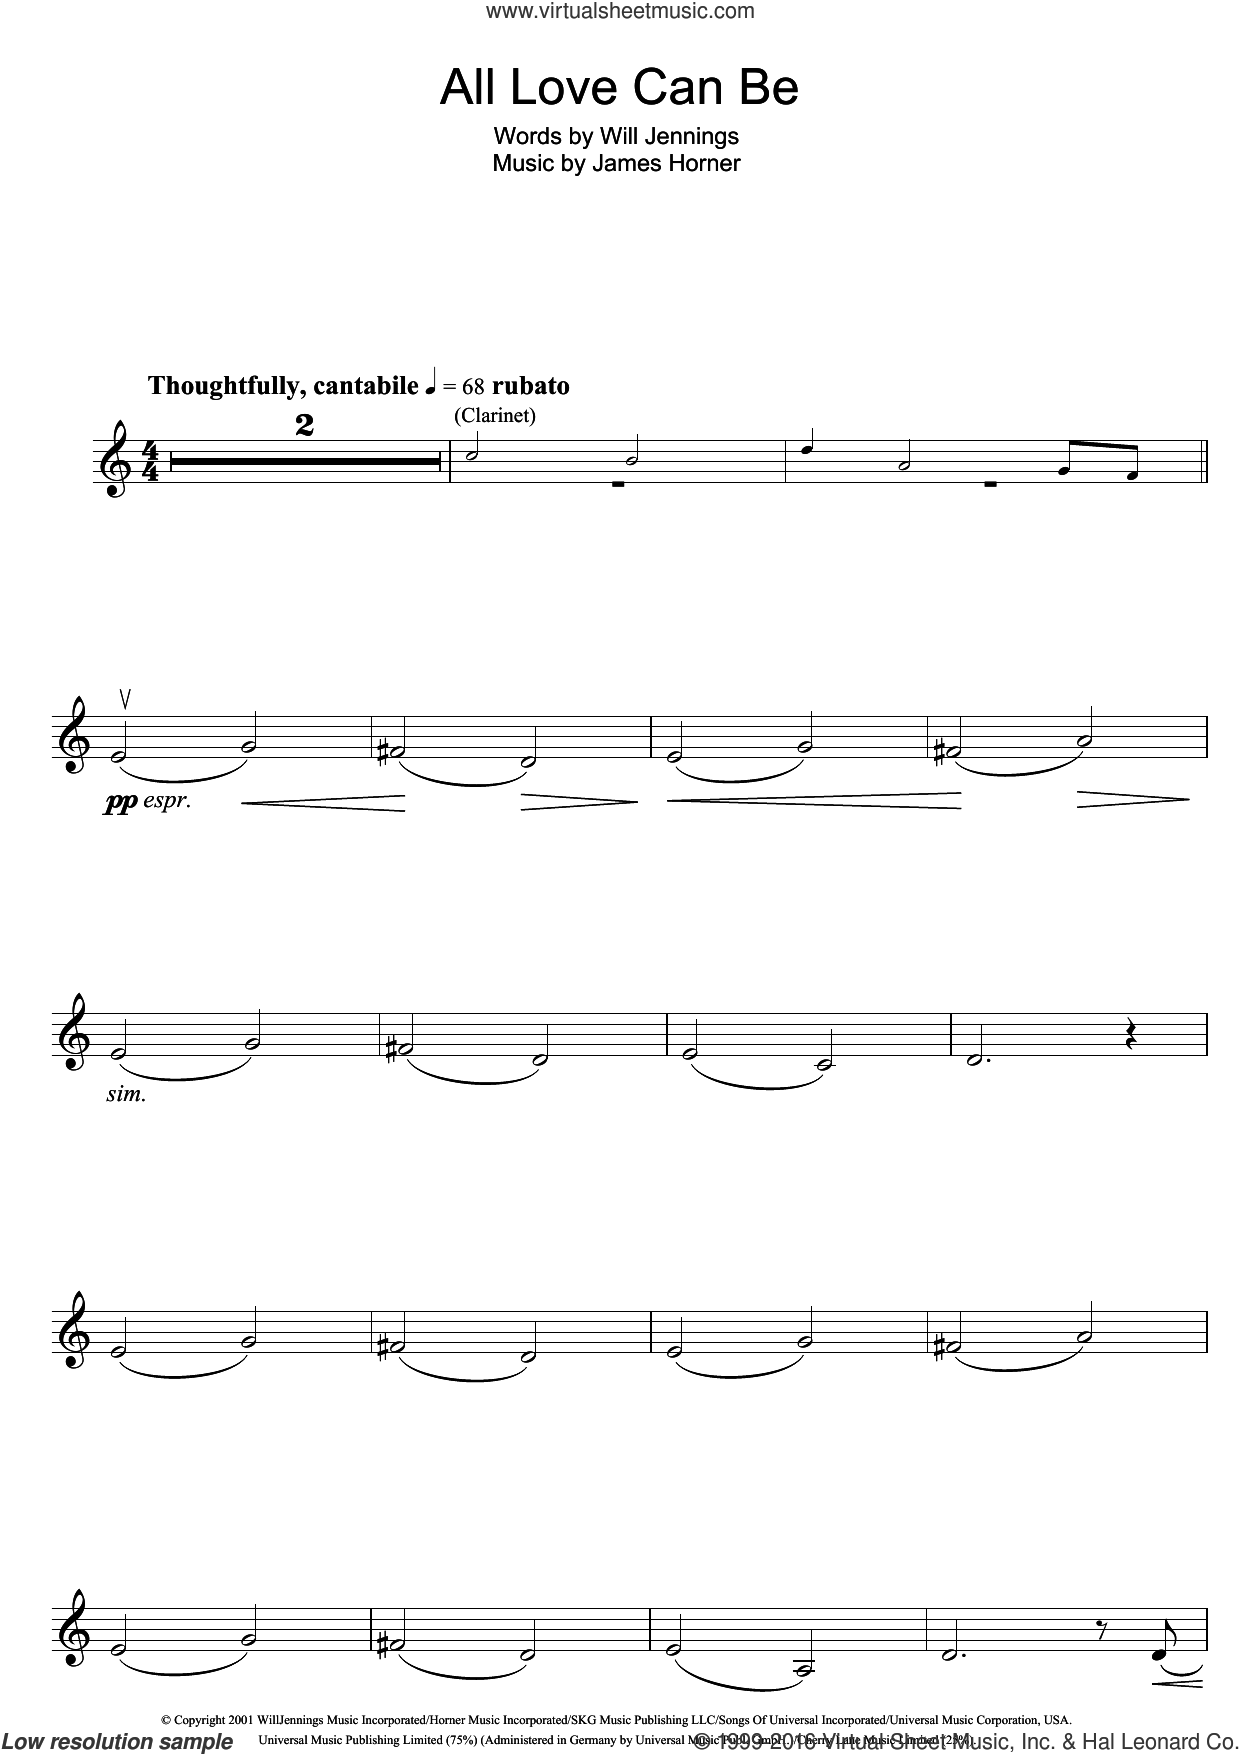 All Love Can Be (from A Beautiful Mind) sheet music for violin solo by James Horner, Charlotte Church and Will Jennings, intermediate skill level